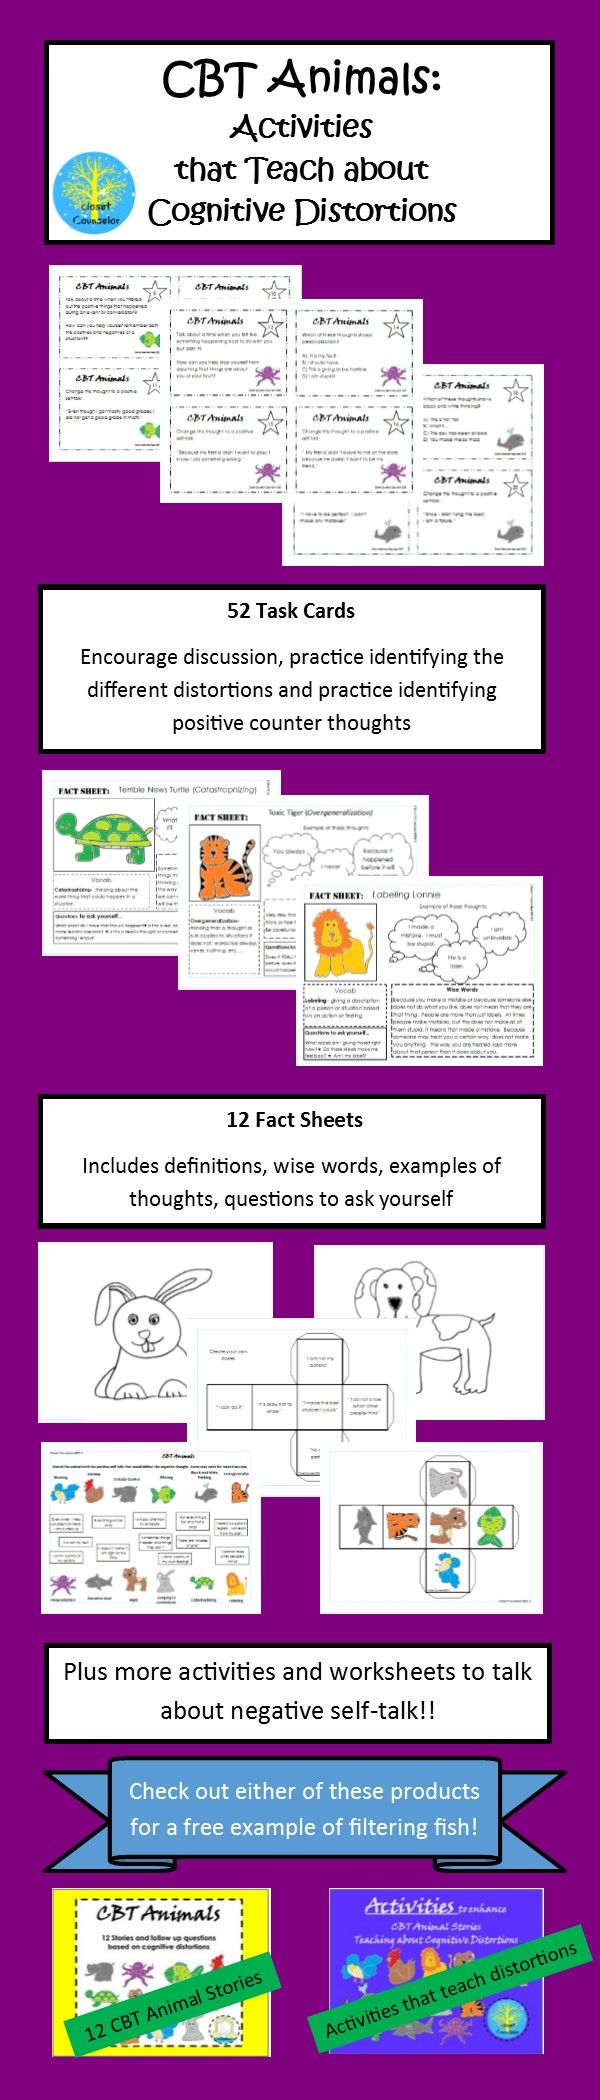 """As a follow up to the successful CBT Animals: Stories that Teach Cognitive Distortions, this activities can be used alone or as an enhancement to teach what are sometimes difficult to understand cognitive distortions.  Includes task cards, fact sheets and other activities!  Check out the product preview for a free sample of the activities for """"Filtering Fish."""""""